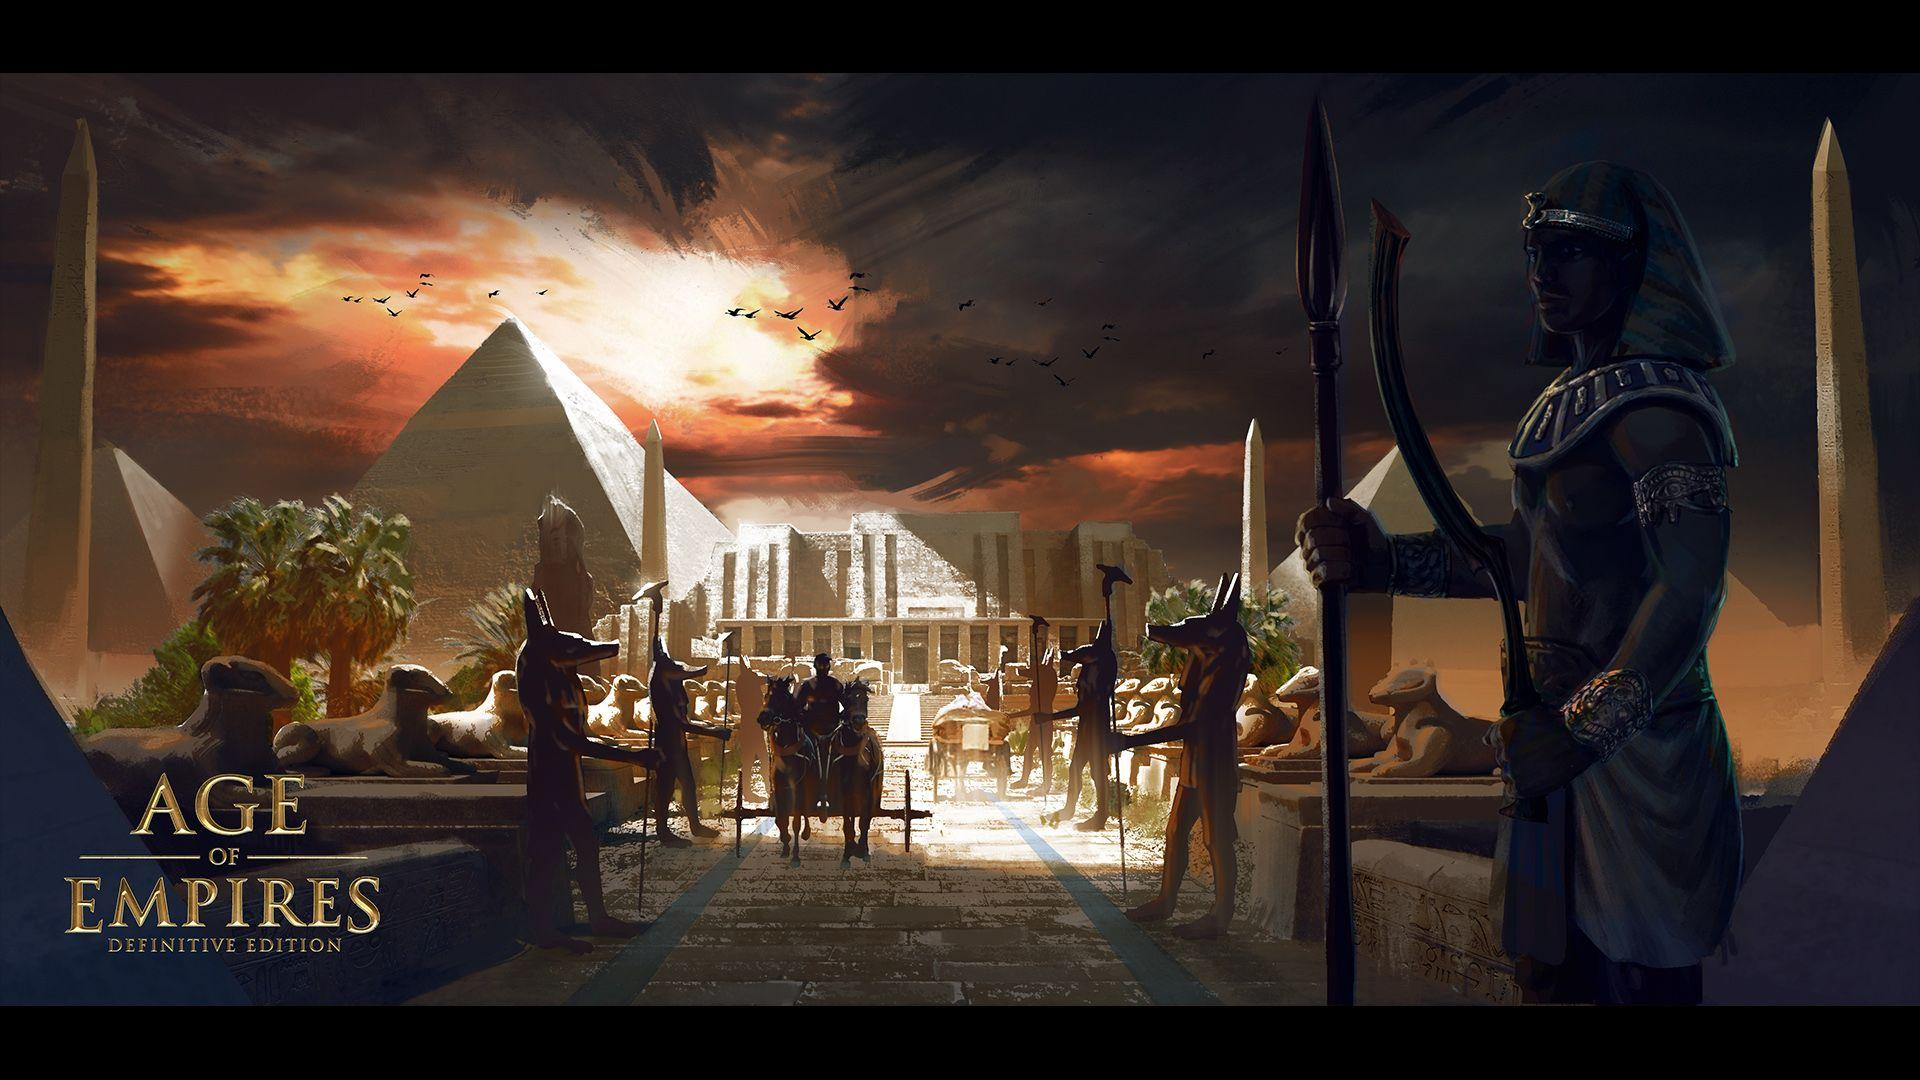 Age Of Empires Definitive Edition Wallpapers Wallpaper Cave